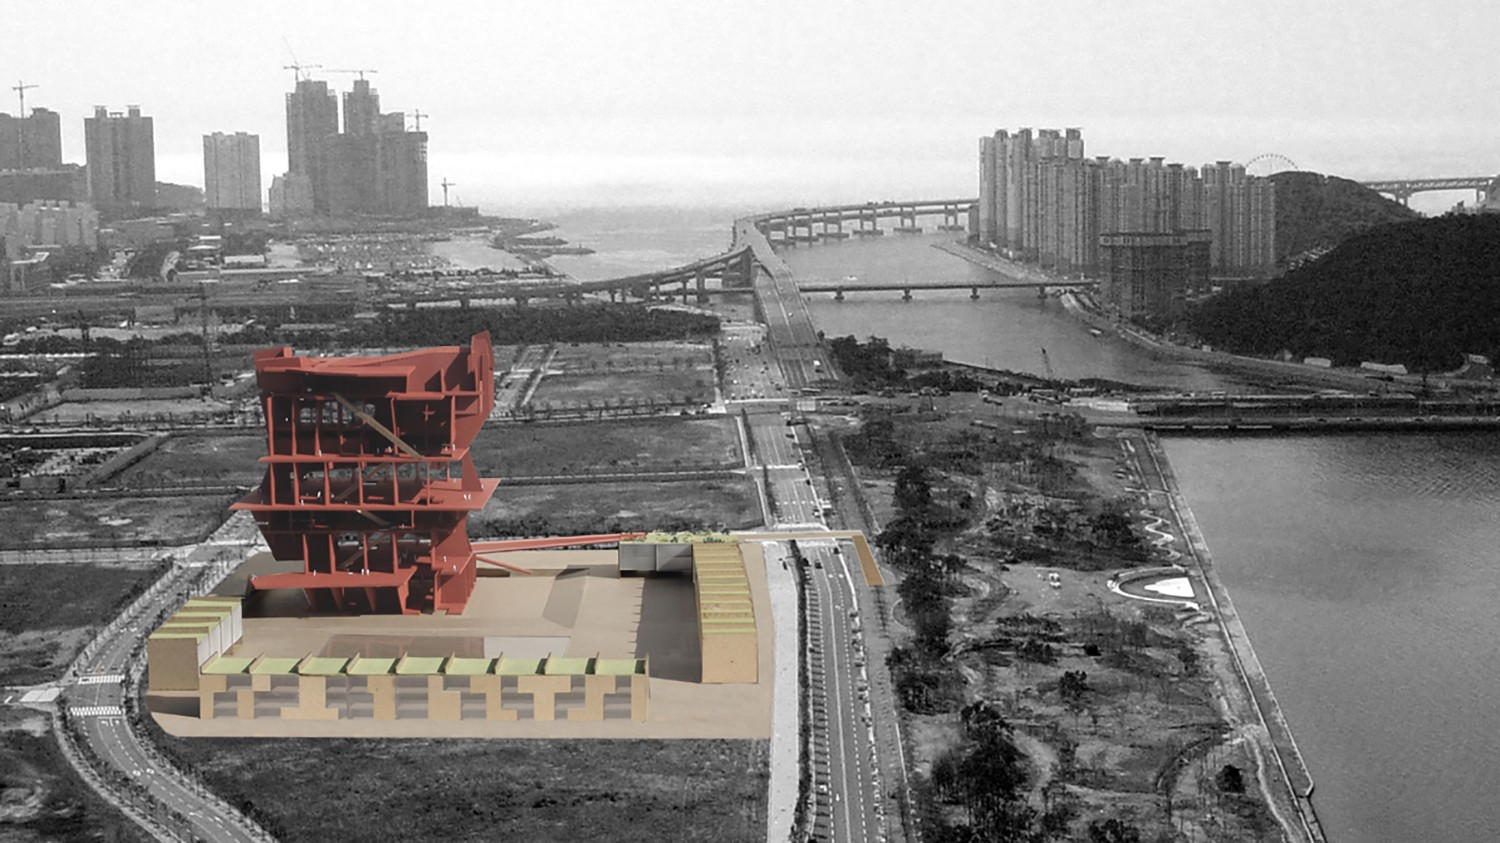 https://s3.us-east-2.amazonaws.com/steven-holl/uploads/projects/project-images/StevenHollArchitects_Busan_TopView_WH.jpg